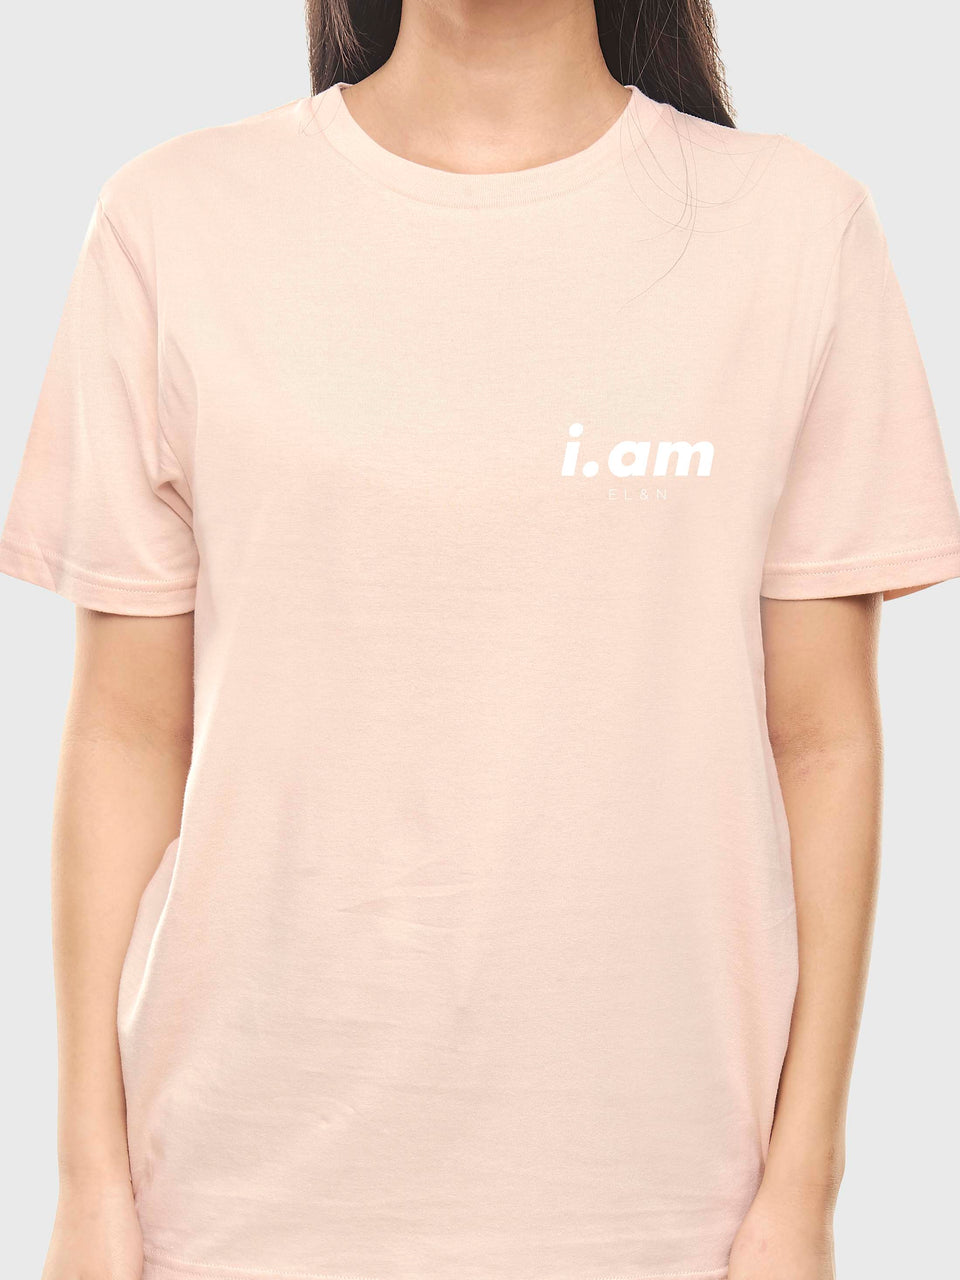 Showing not telling - Pink - Unisex T